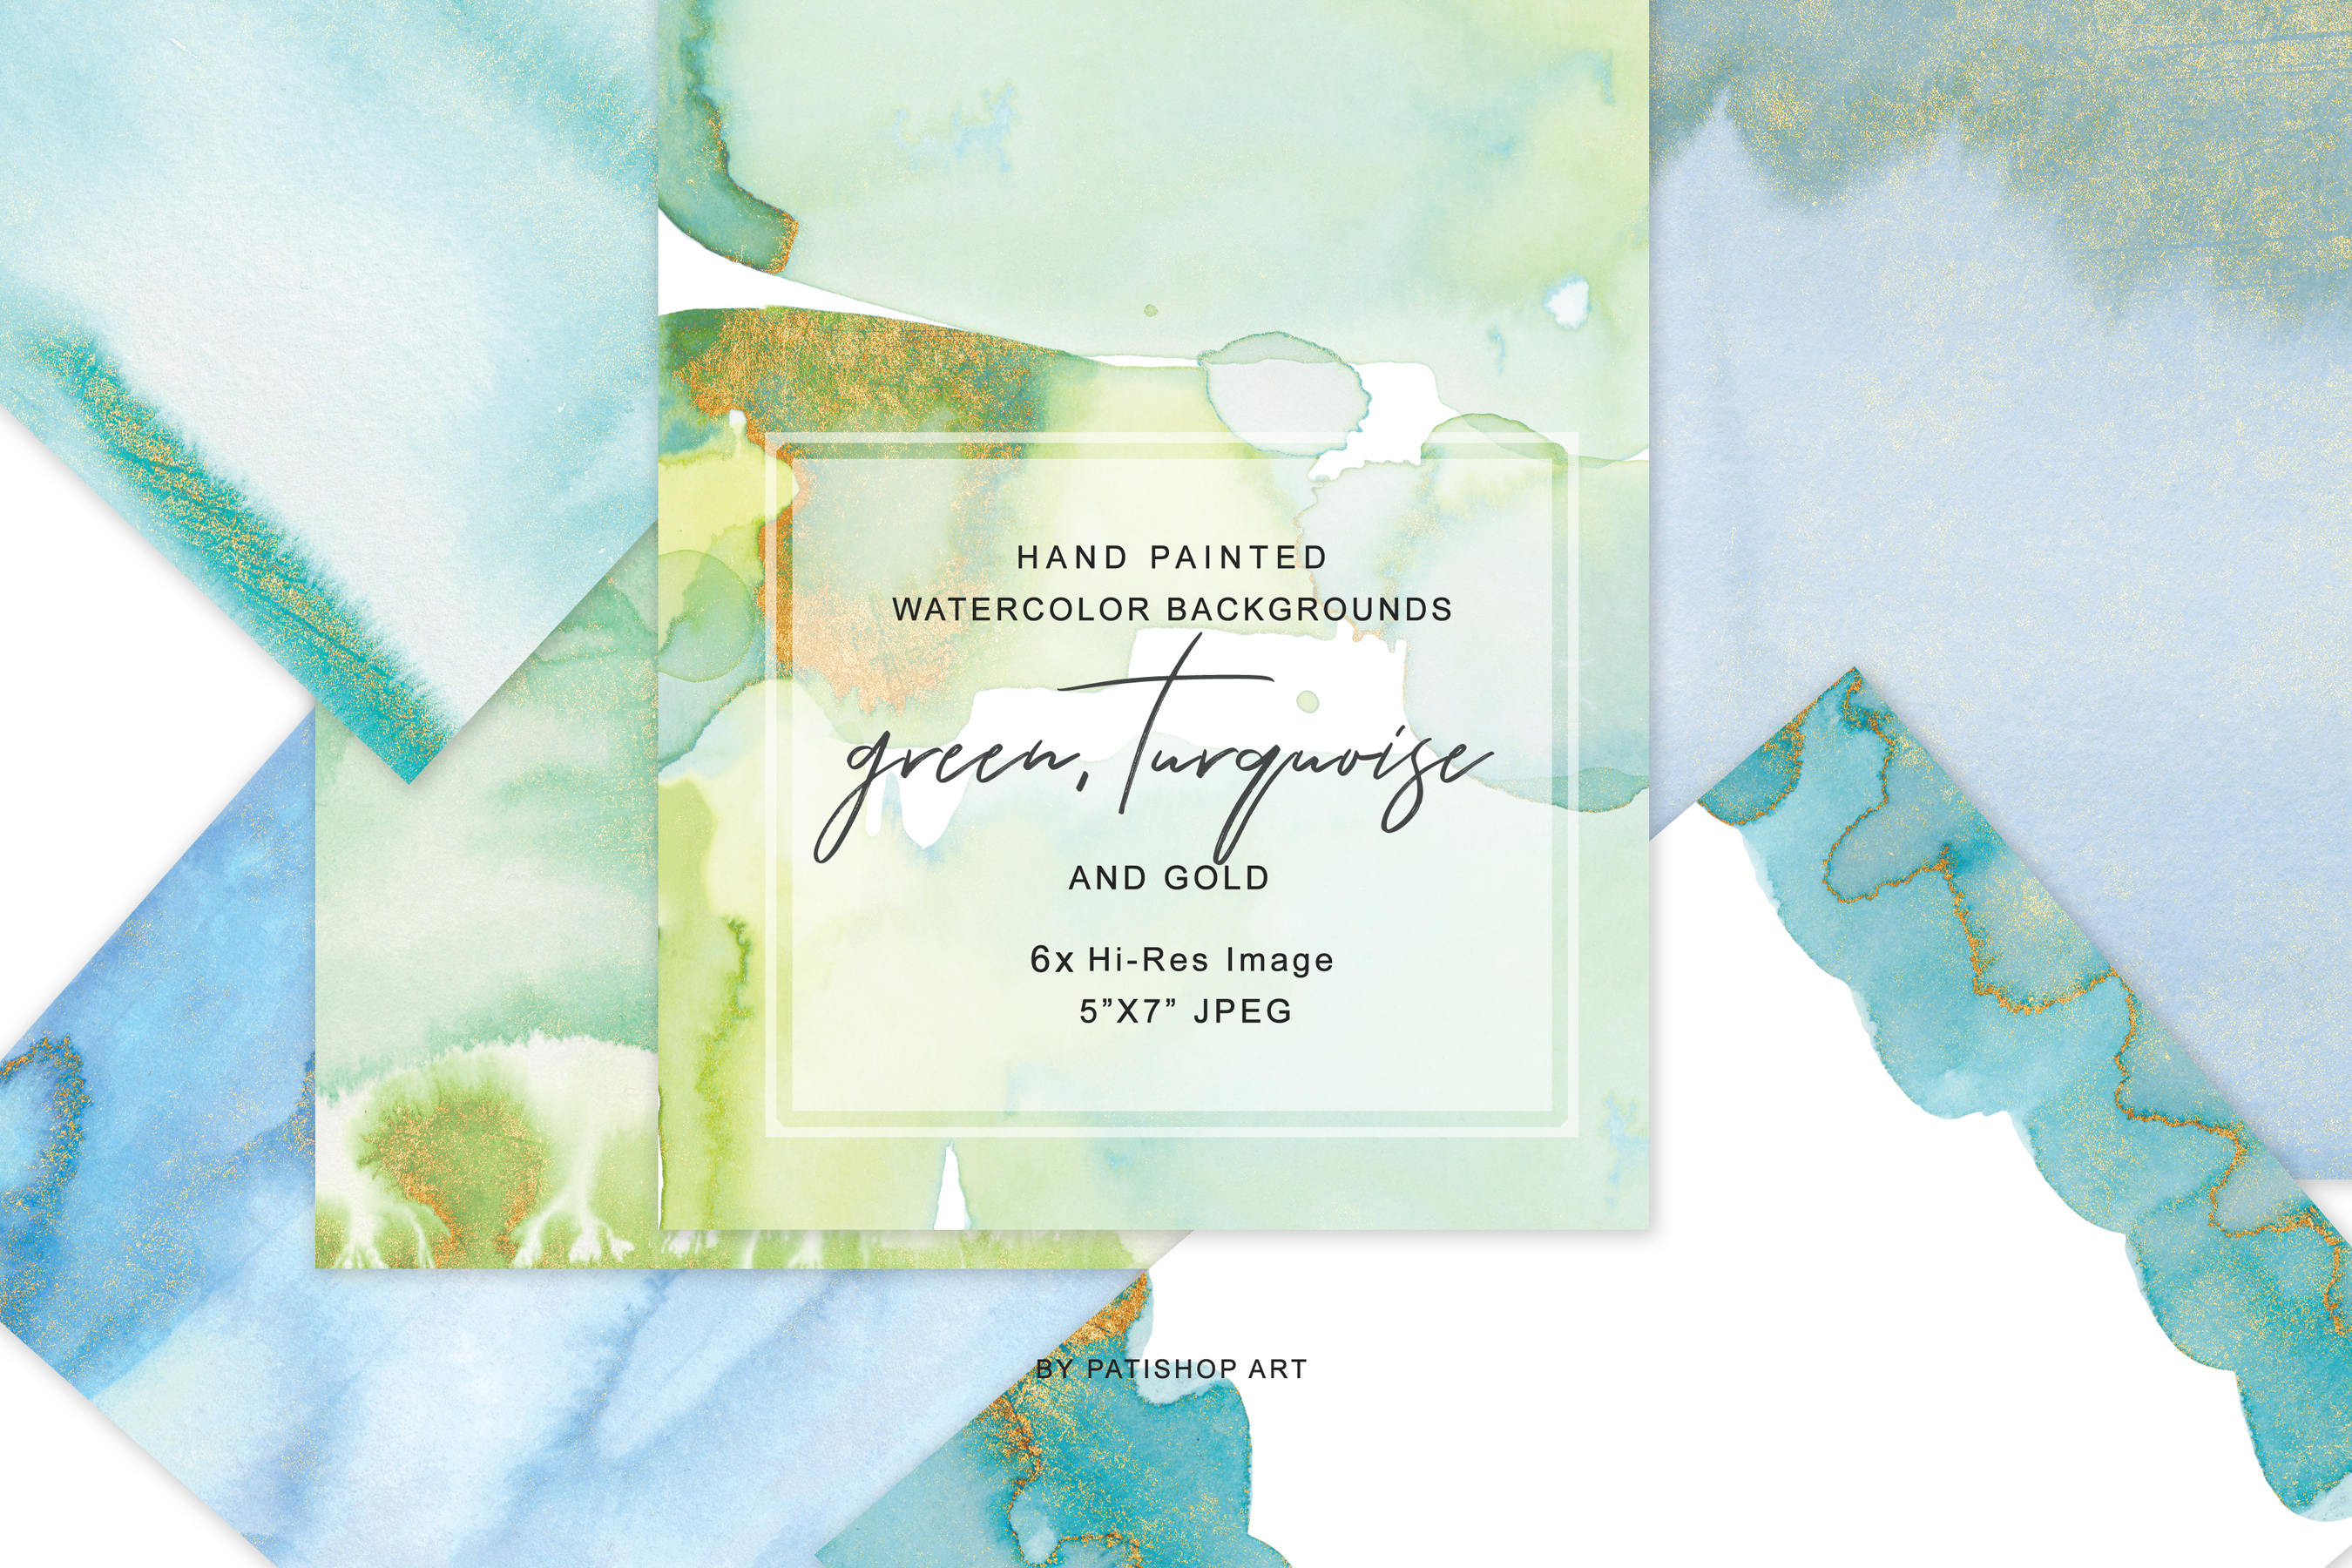 Watercolor Glittered Green & Turquoise Background 5x7 example image 2